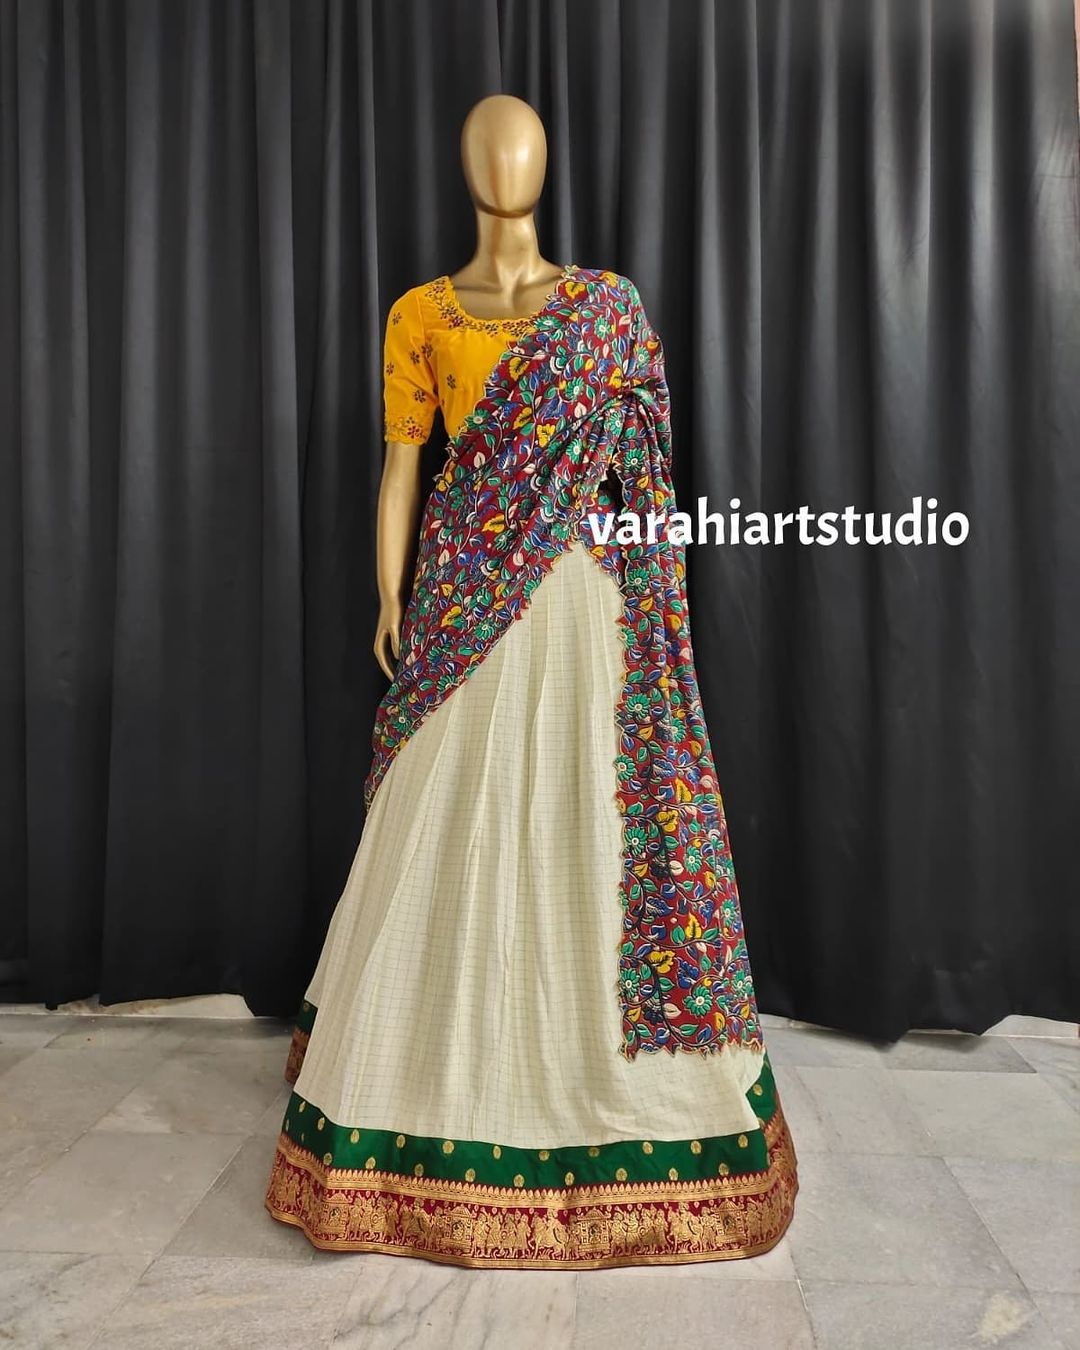 Stunning off white color pattu lehenga and yellow blouse with floral dupatta. 2021-09-07